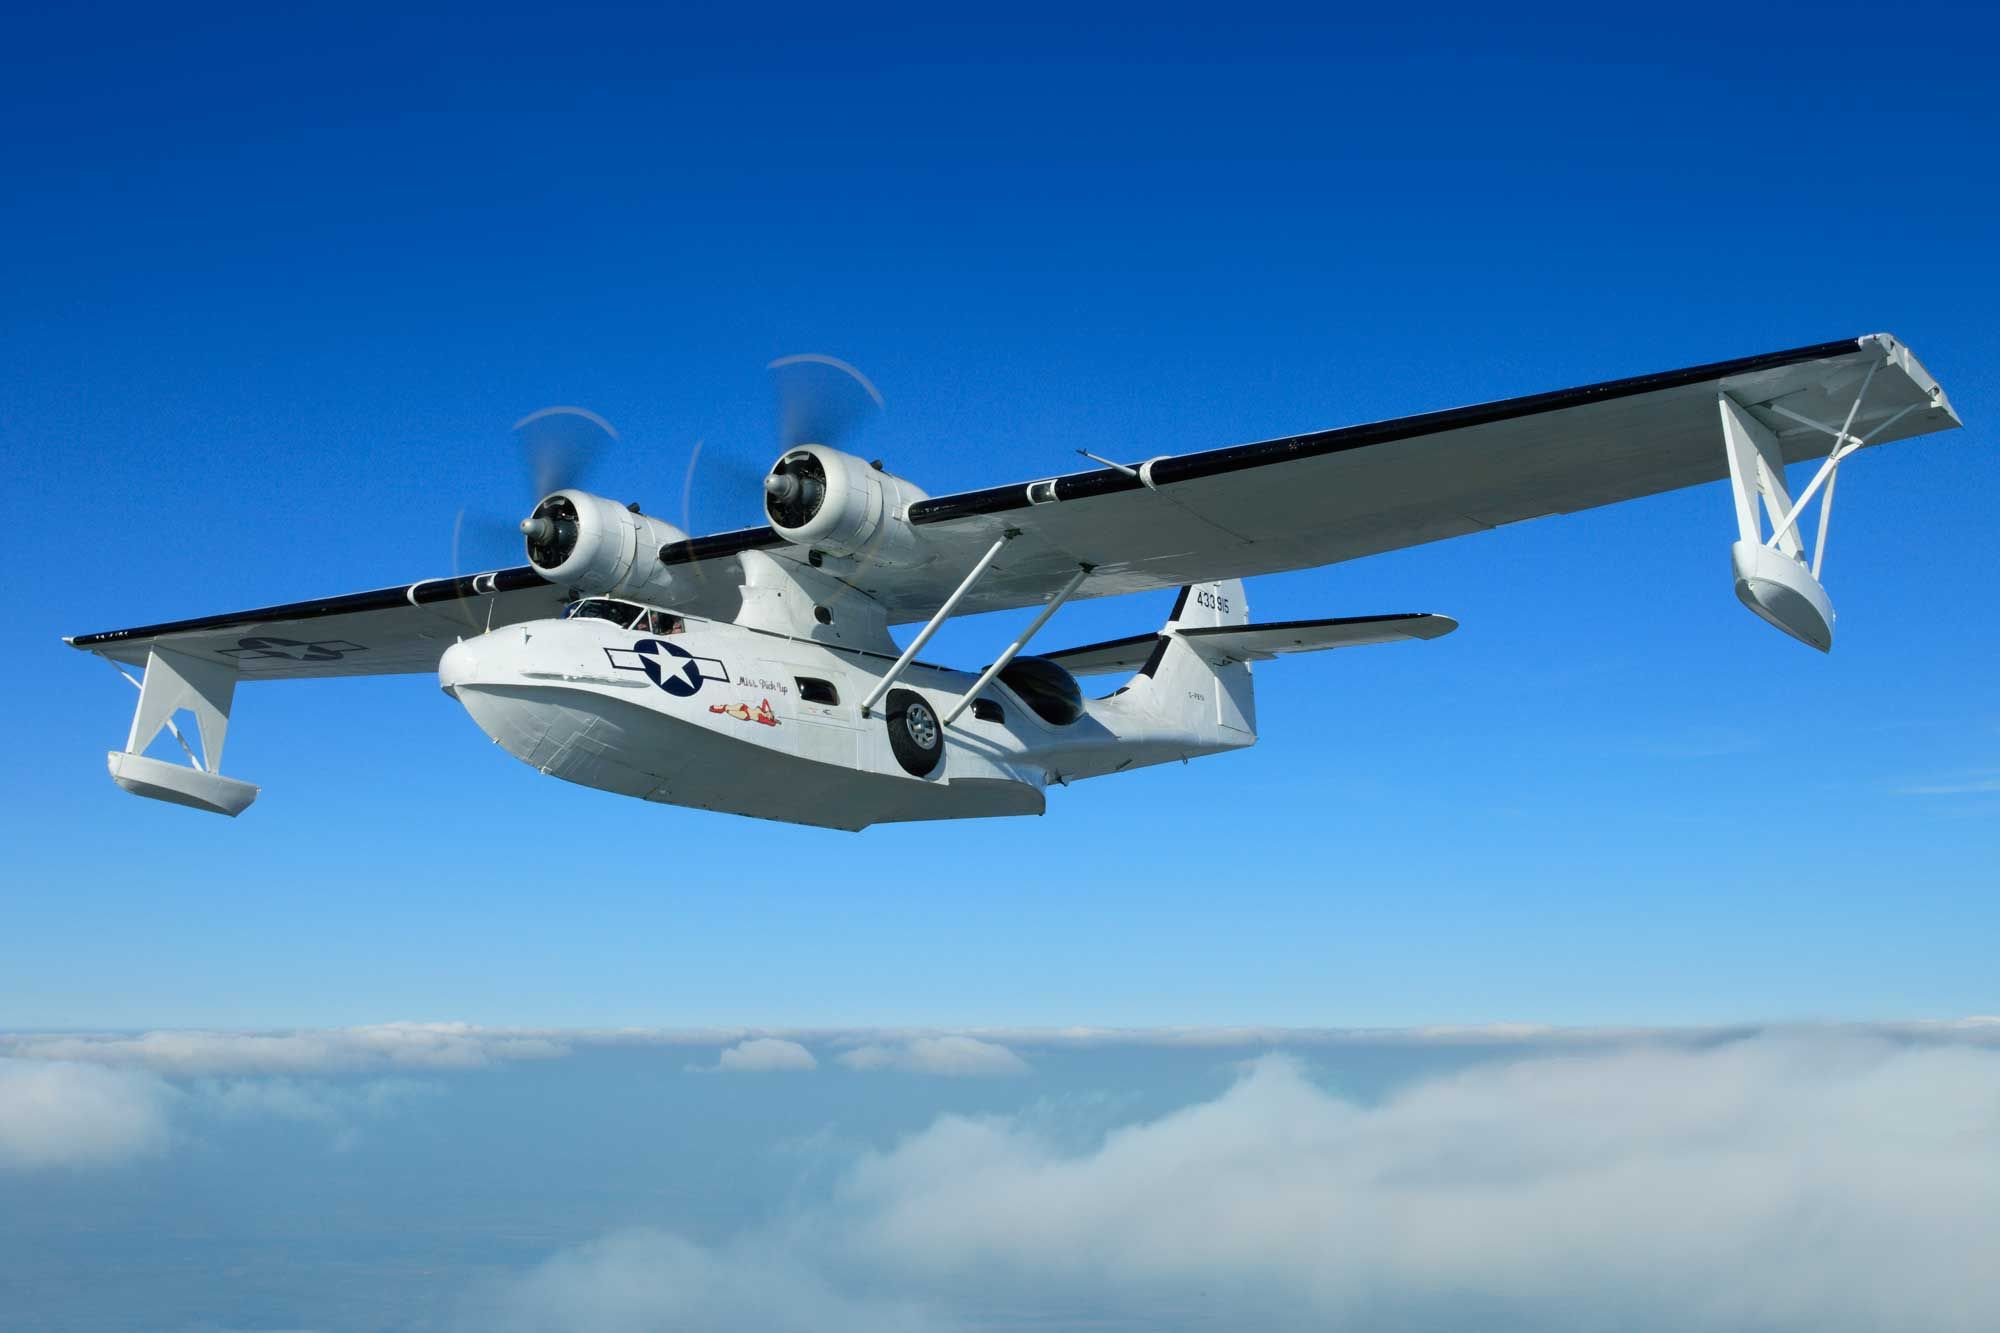 The Catalina was used in roles ranging from submarine hunting to search and rescue and is probably the most well known flying boat ever produced. G-PBYA is operated by The Catalina Society who will be flying the aircraft in Scampton Airshow's flying display.